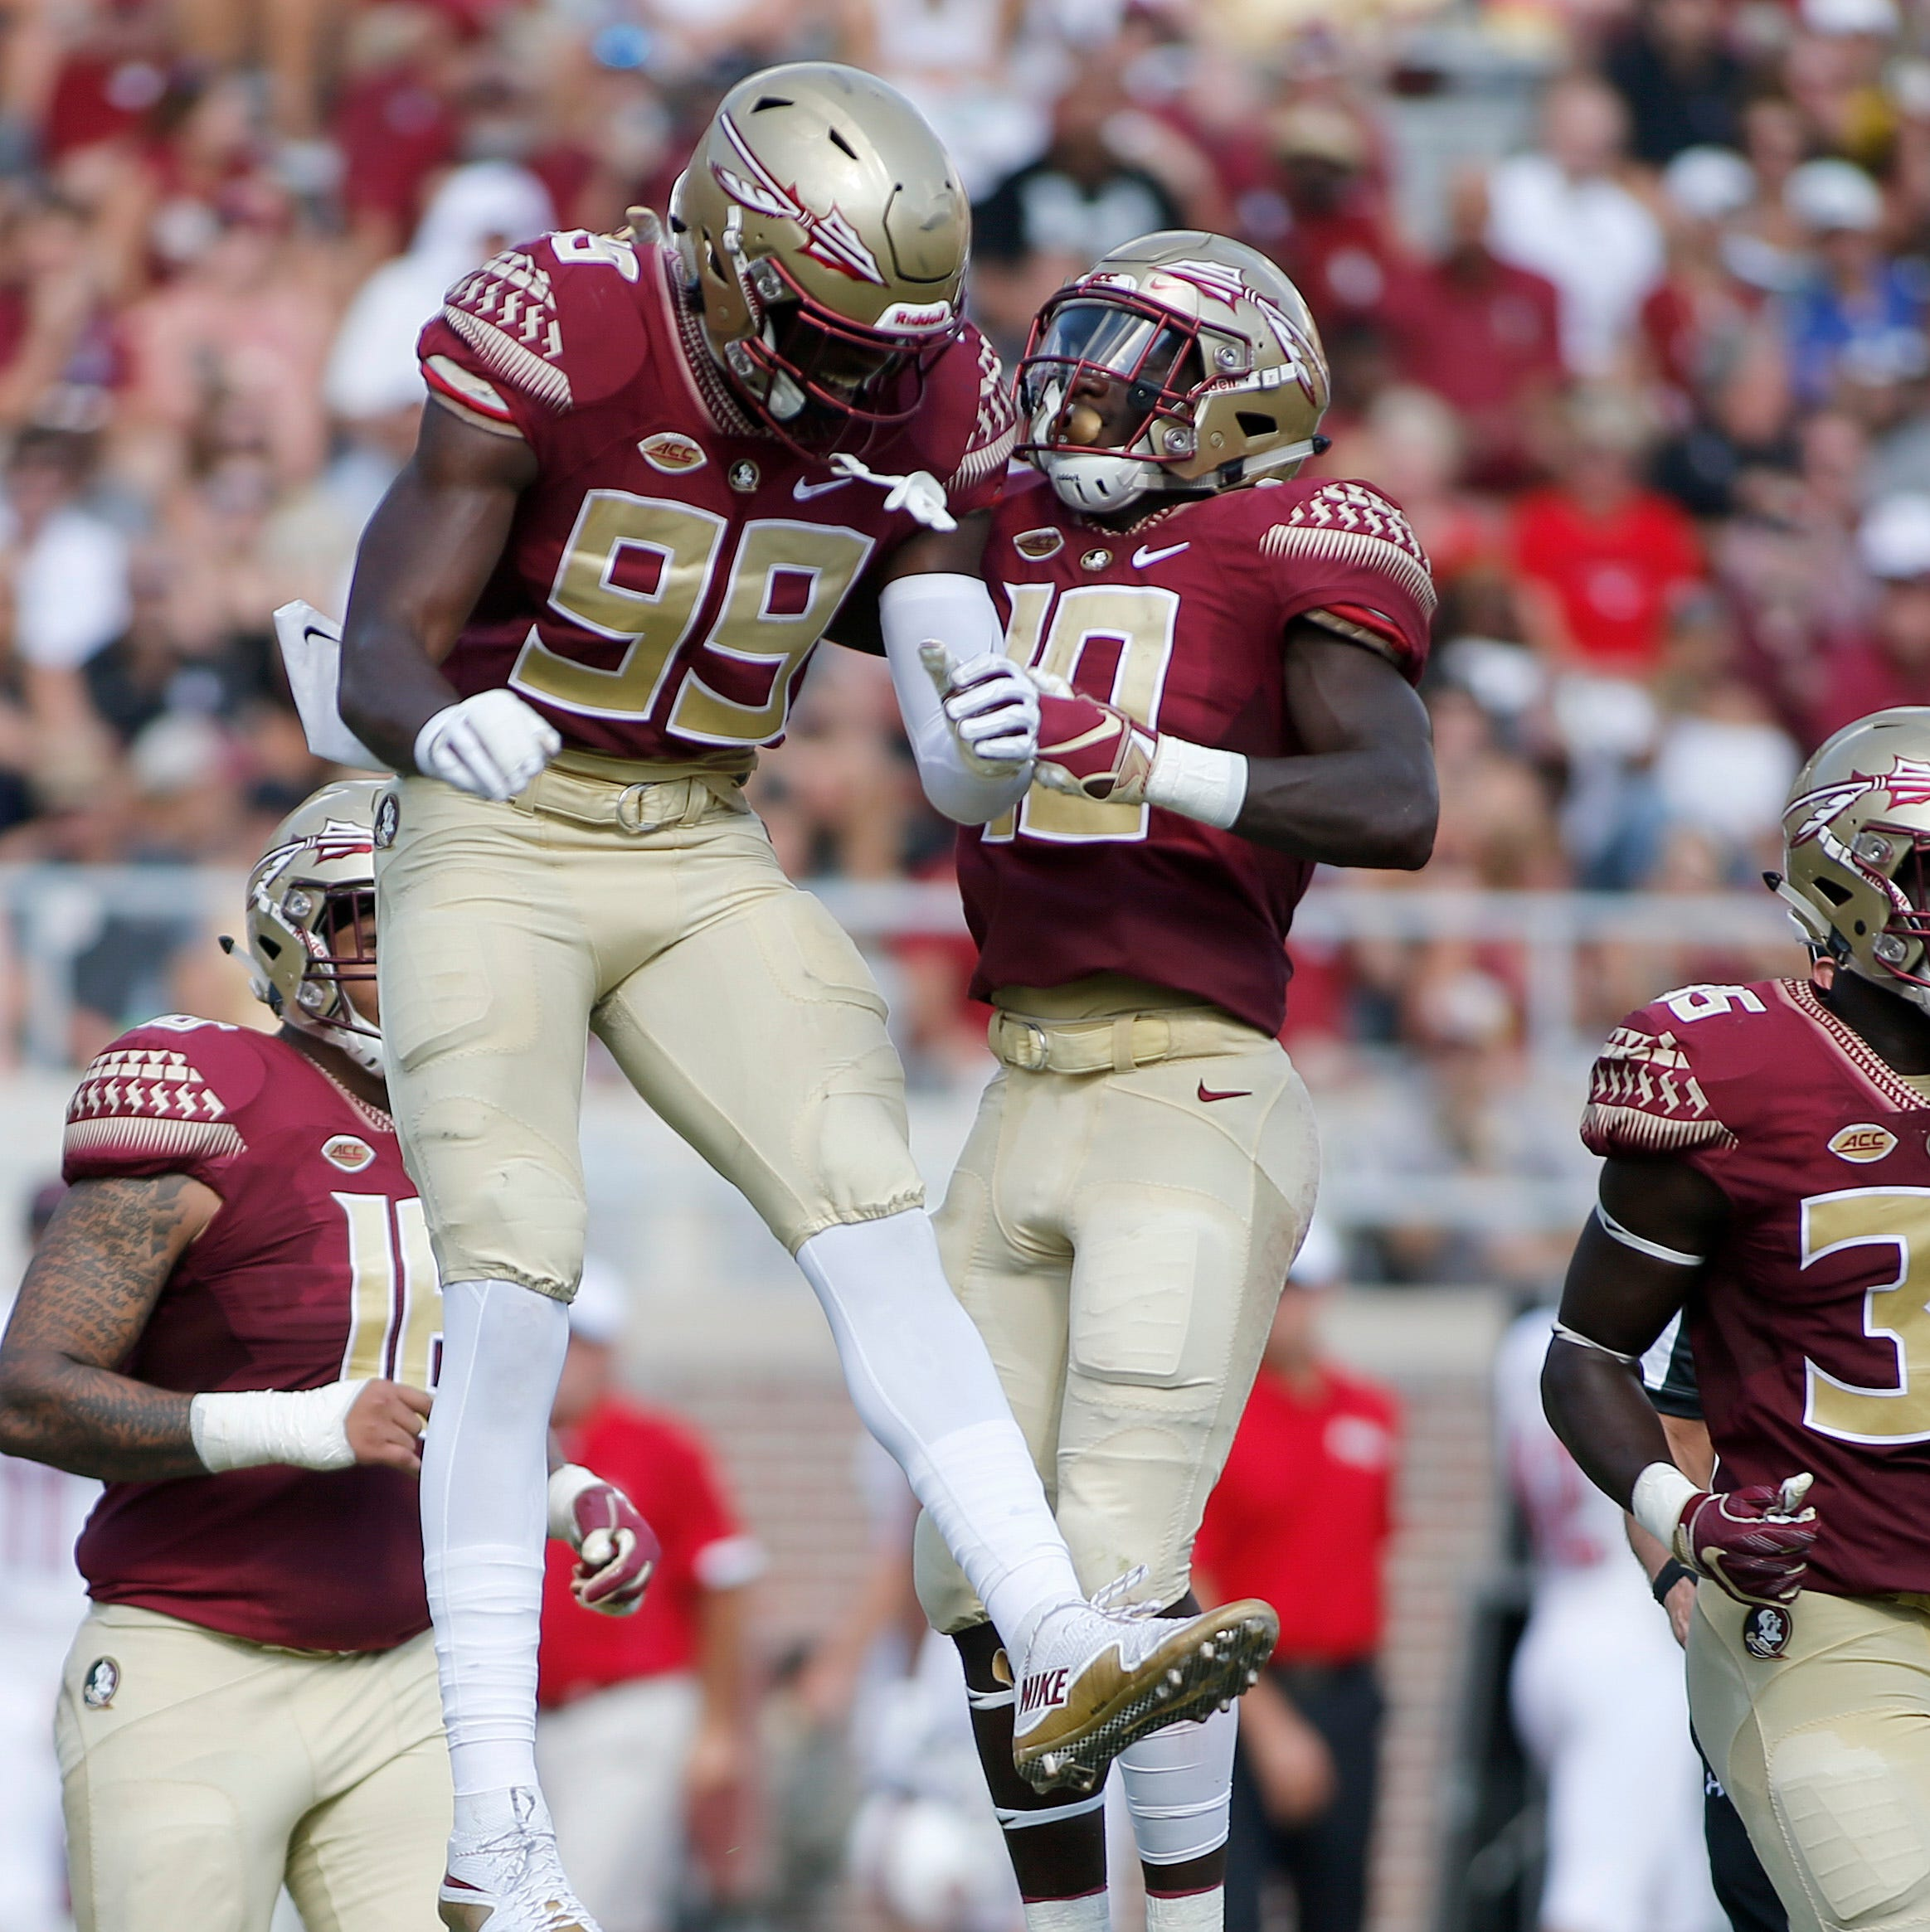 Florida State football's first-half superlatives